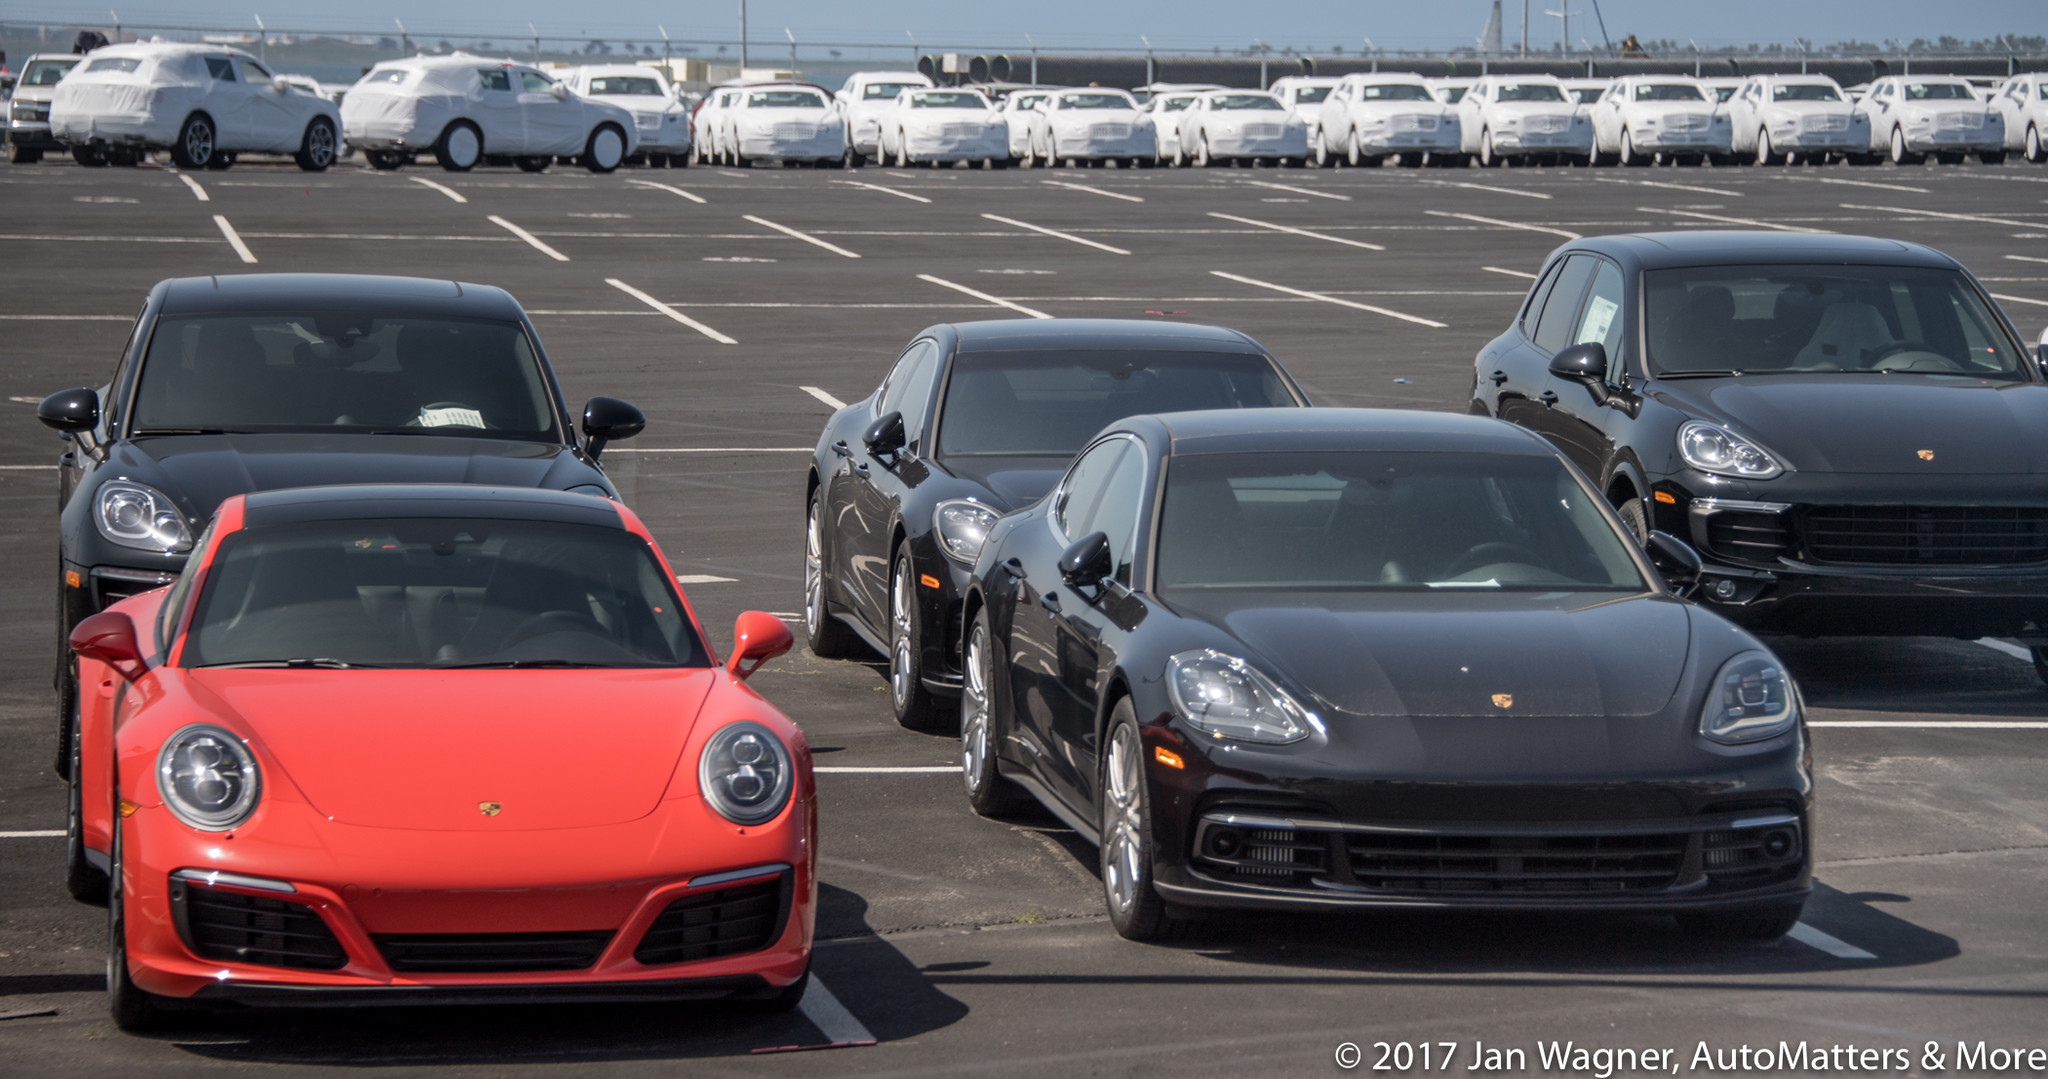 New Porsches at the Port of San Diego